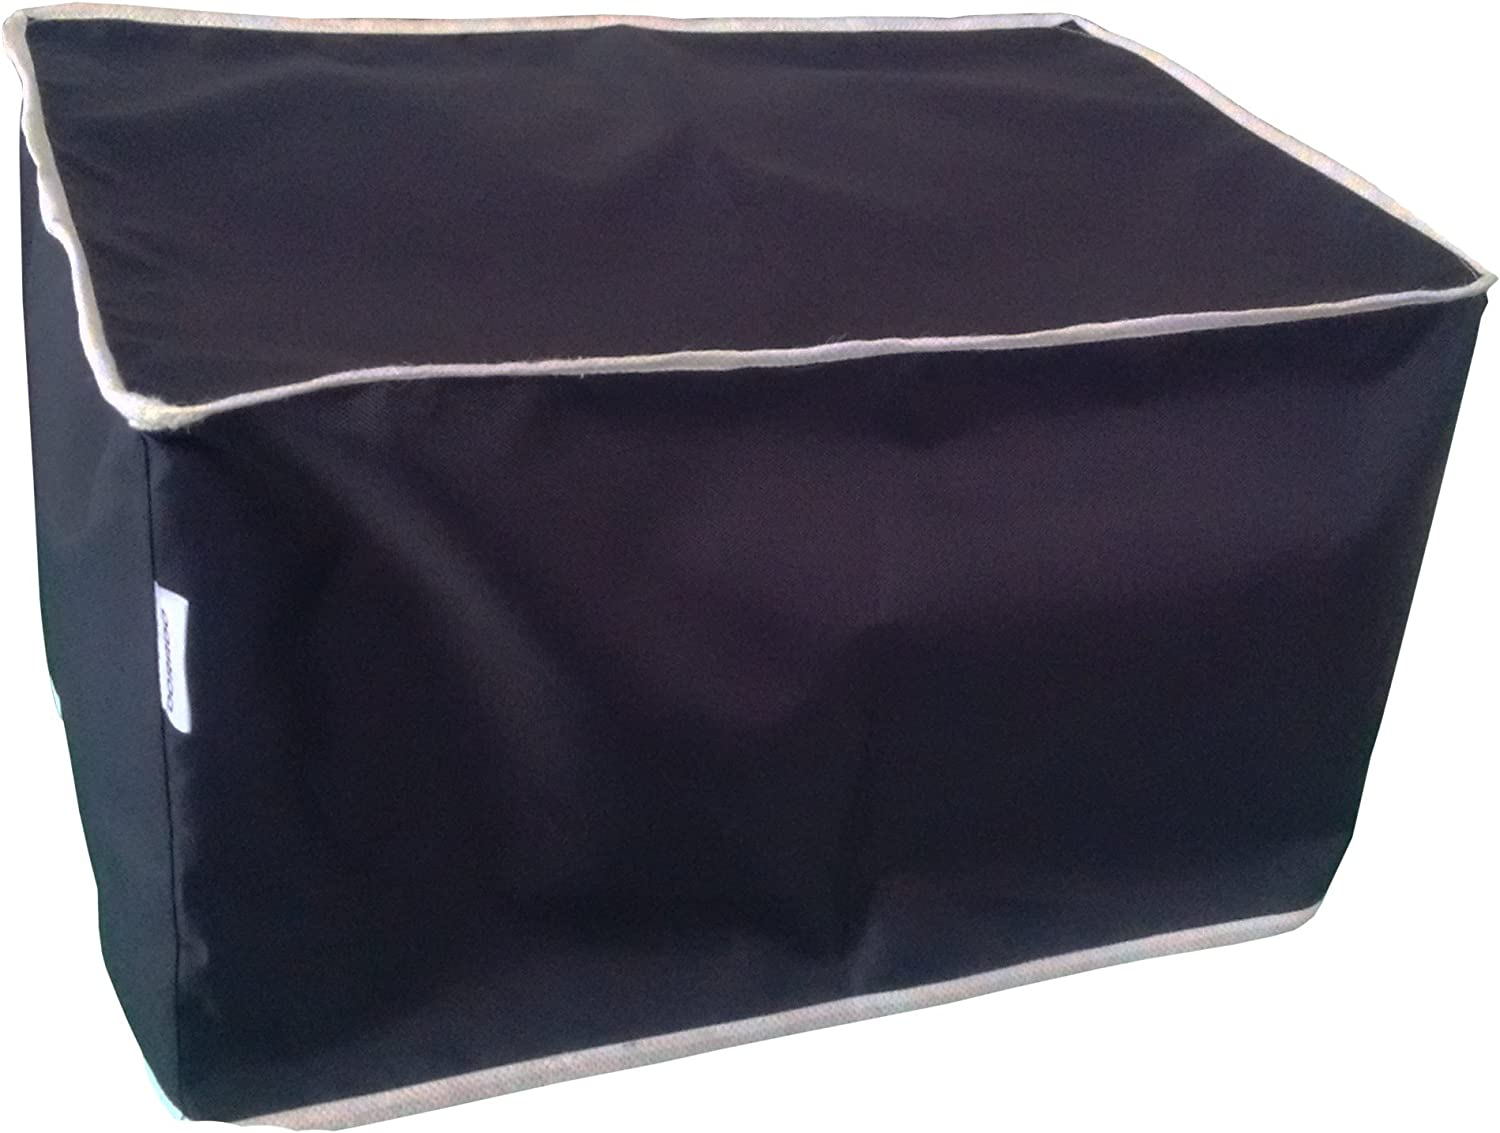 Dorado Dust Proof Water Proof Washable Printer Cover for HP OfficeJet Pro 6810/6820 / 6830/6835 / 6950/6954 / 6960/6962 / 6968/6970 / 6974/6975 Printers (18.3W x 15.2D x 8.8H) - DRD102